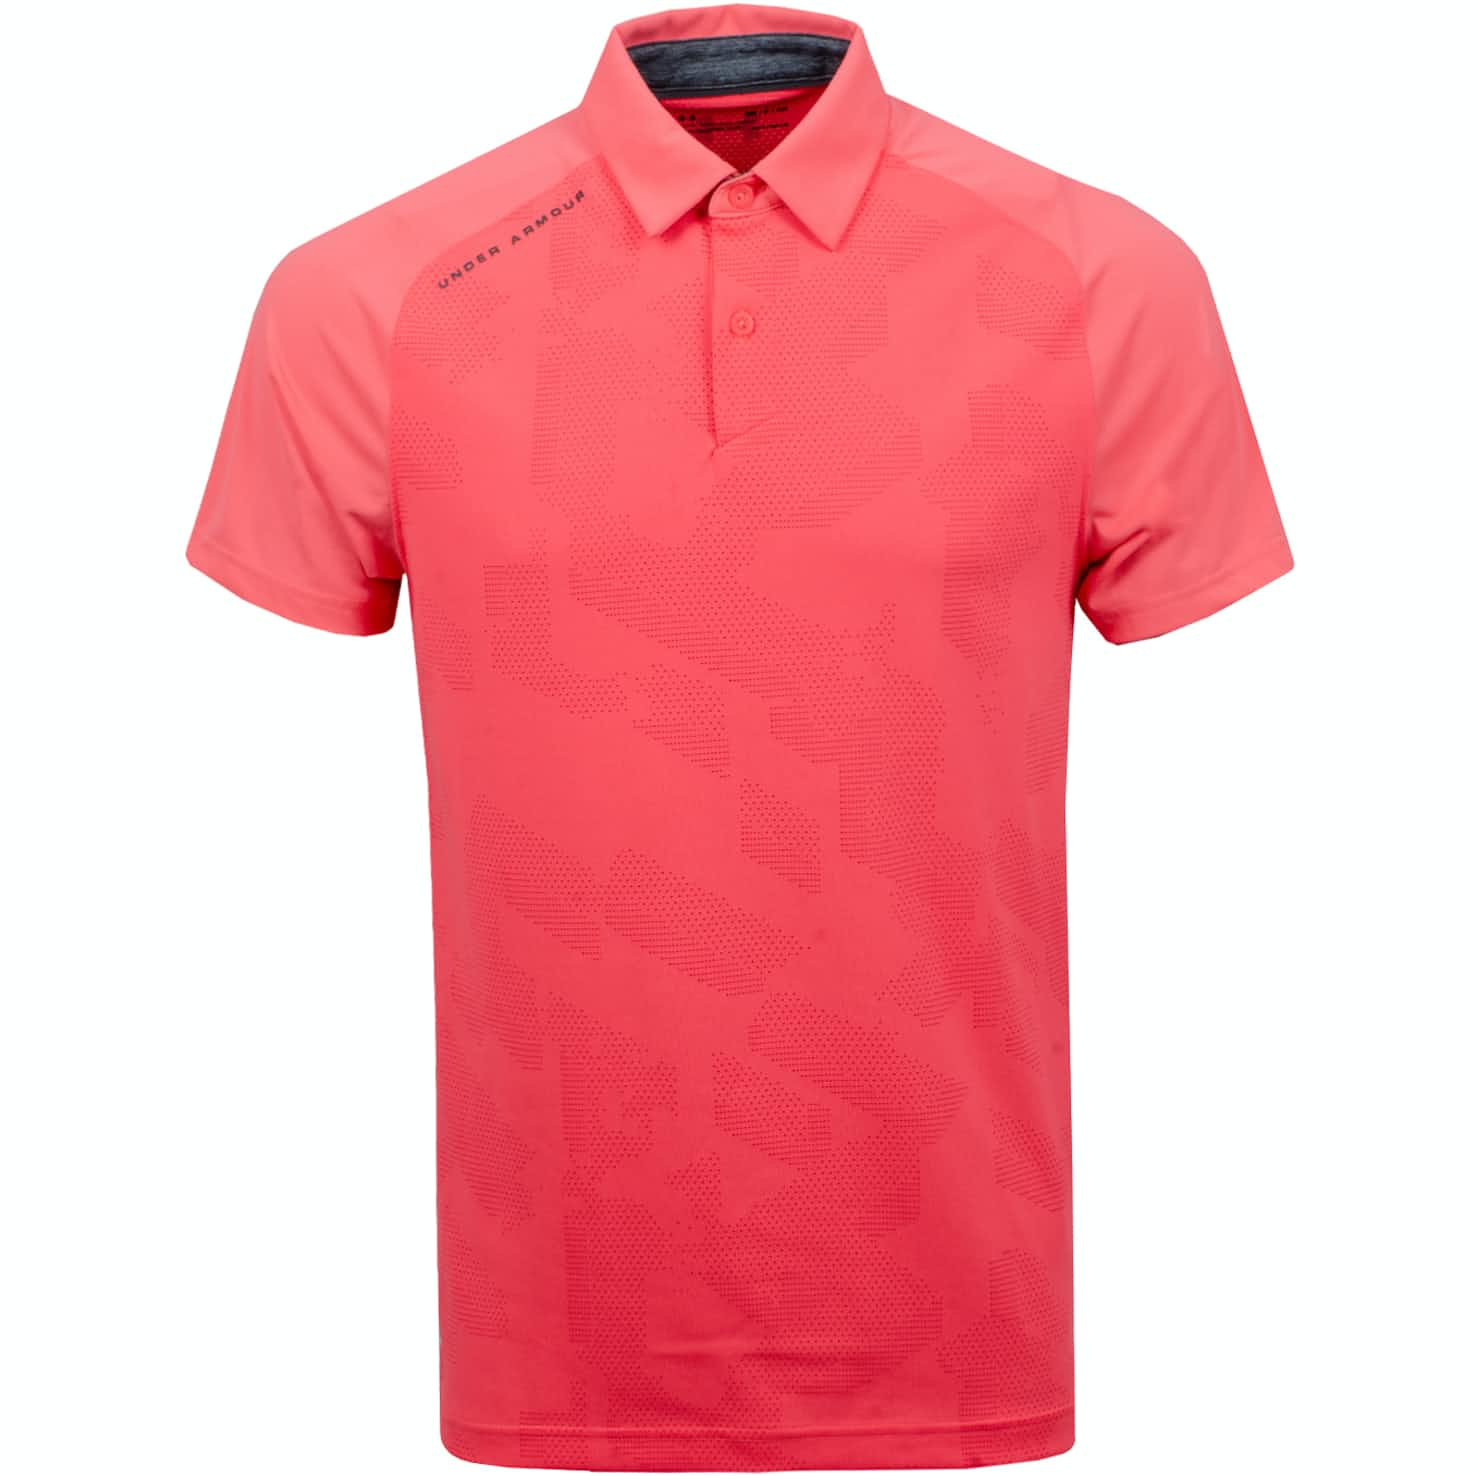 Vanish Champion Polo Blitz Red/Pitch Grey - SS19